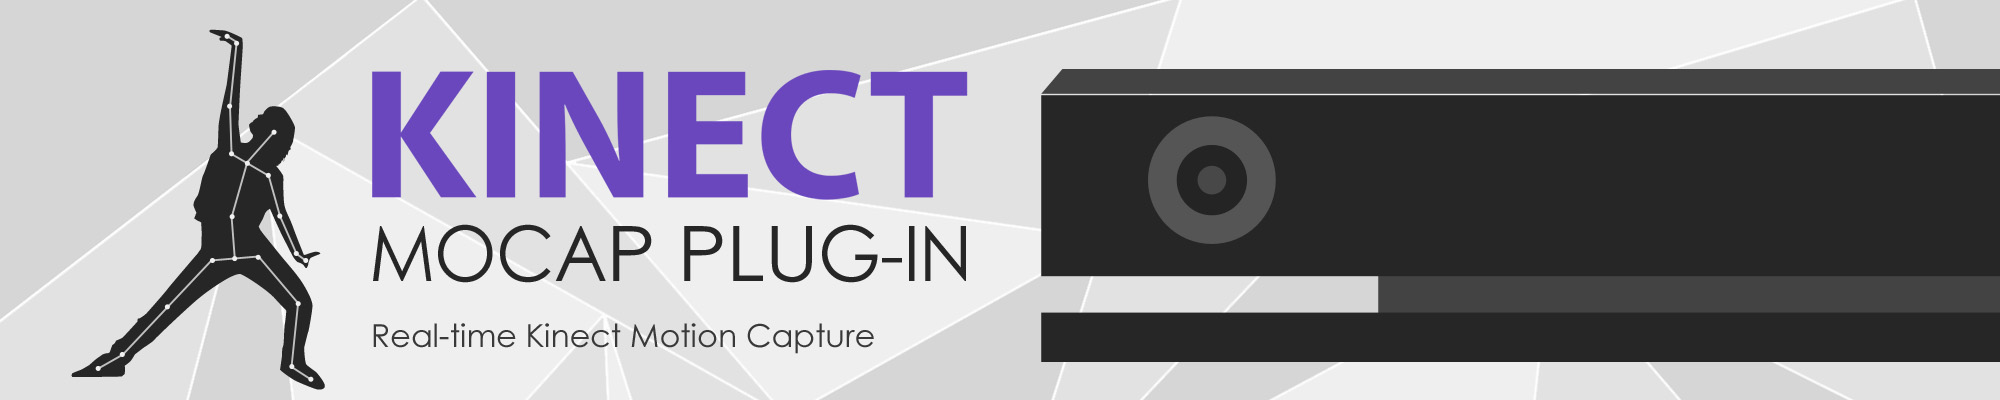 iClone Mocap Plug-in for Kinect – Animate in Real-Time